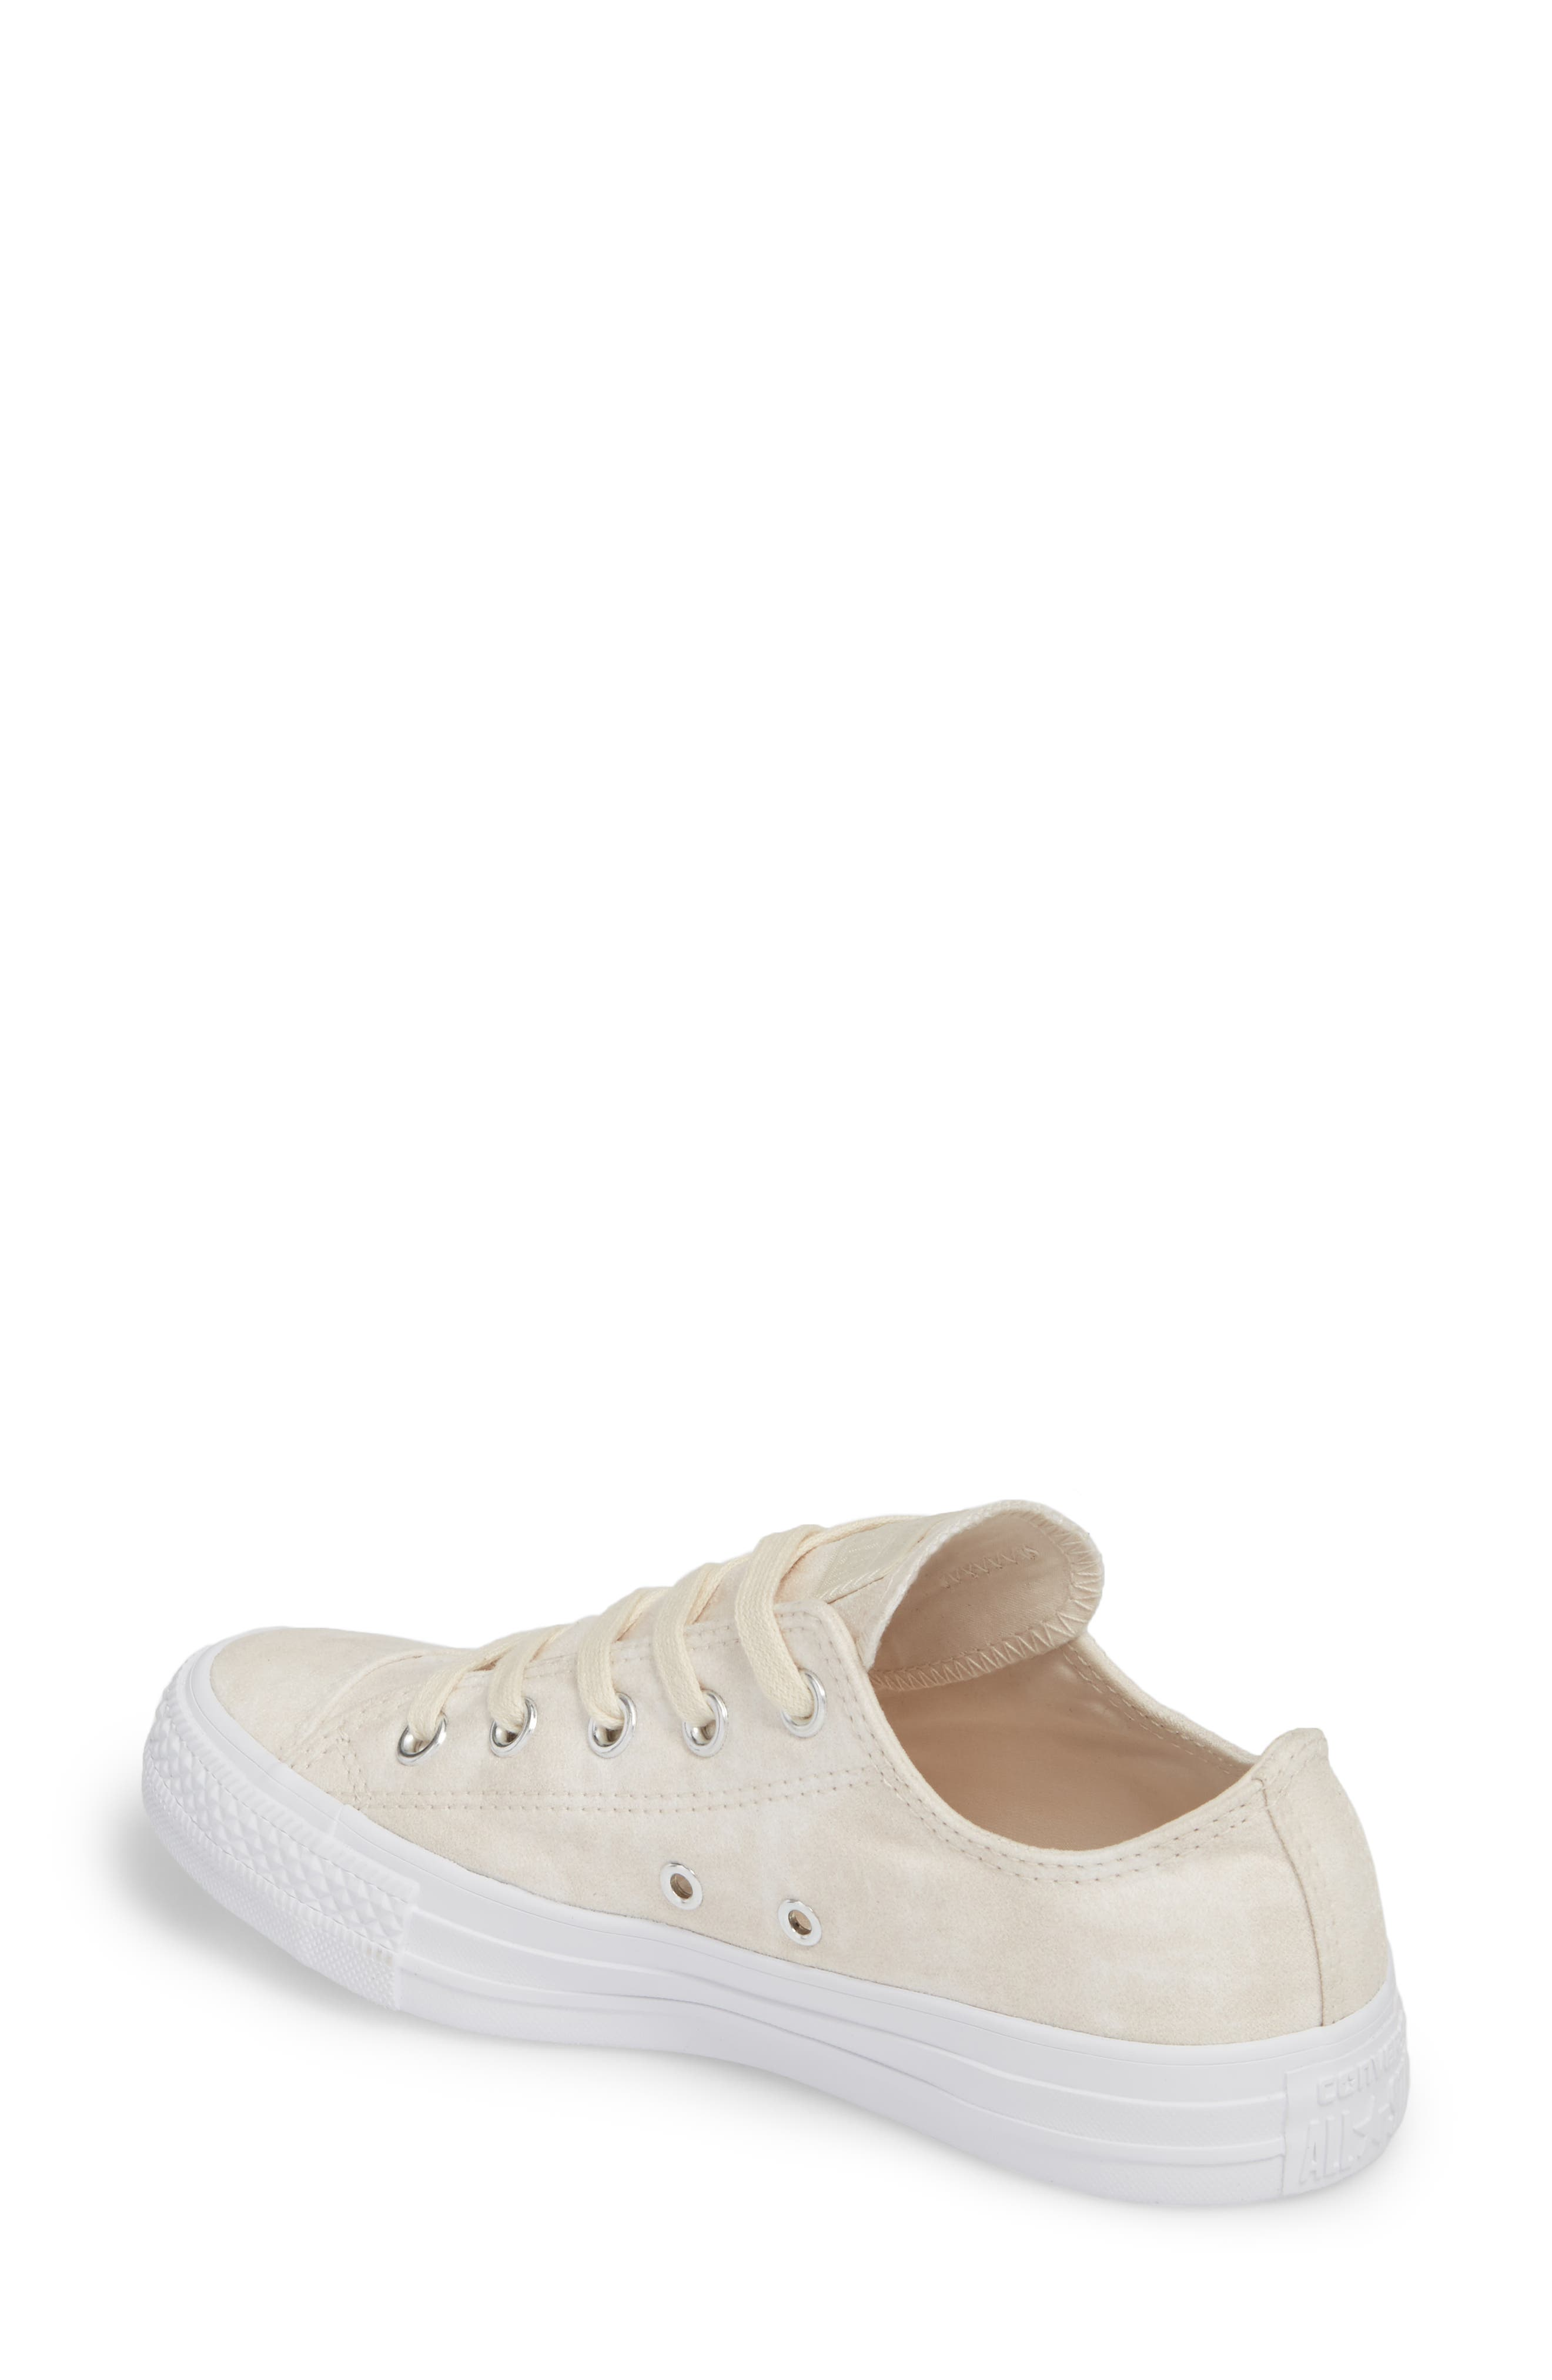 Chuck Taylor<sup>®</sup> All Star<sup>®</sup> Peached Low Top Sneaker,                             Alternate thumbnail 2, color,                             Driftwood